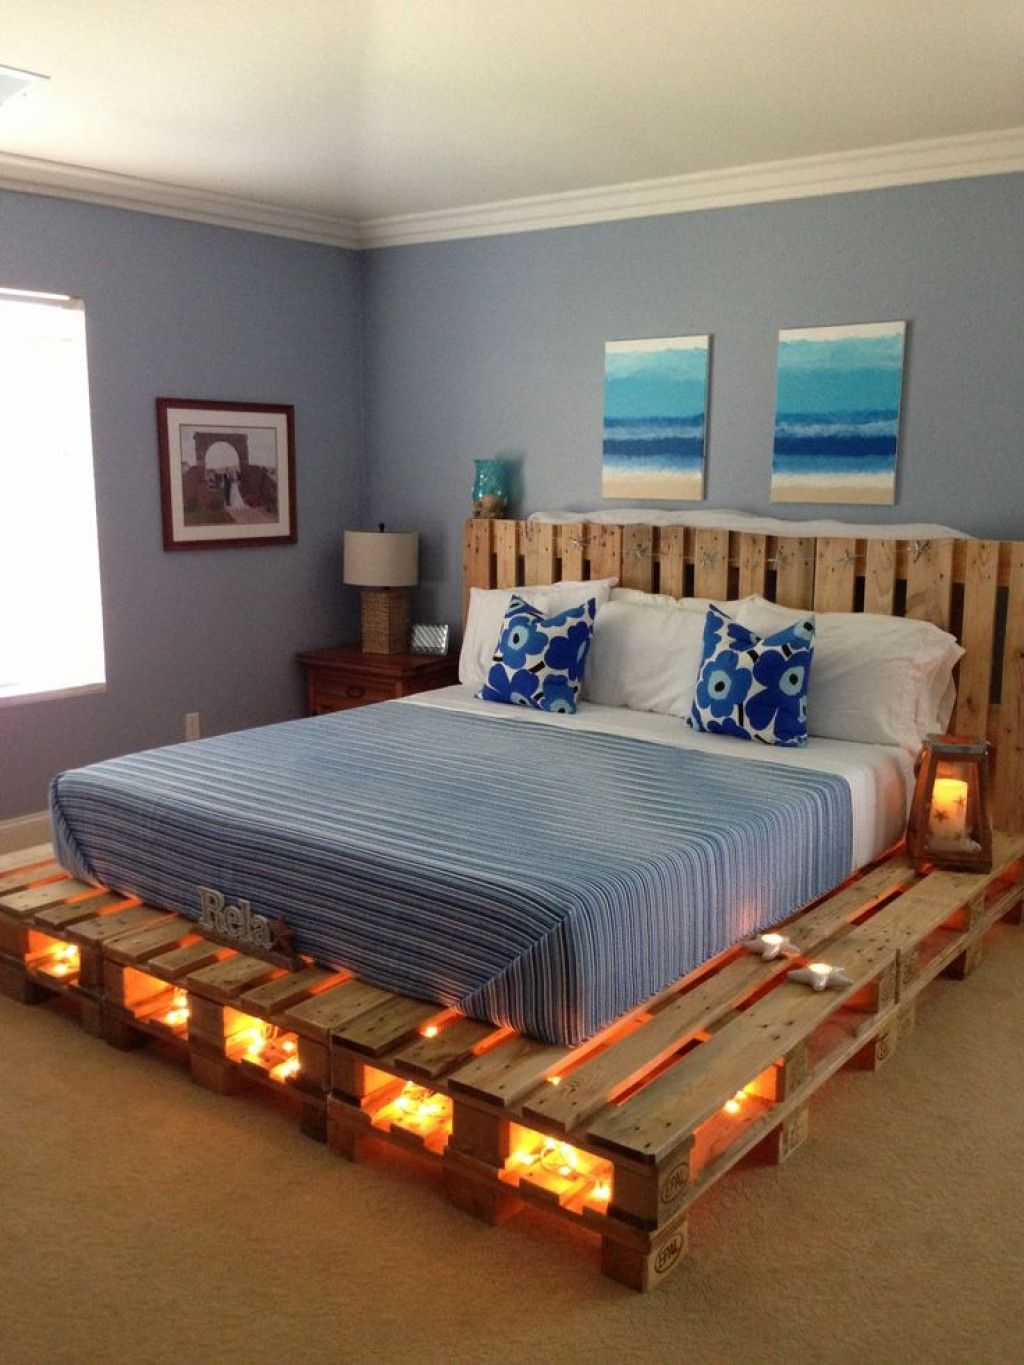 Diy pallet bedroom furniture foto pinterestspaceshanty  vide  pinterest  diy pallet